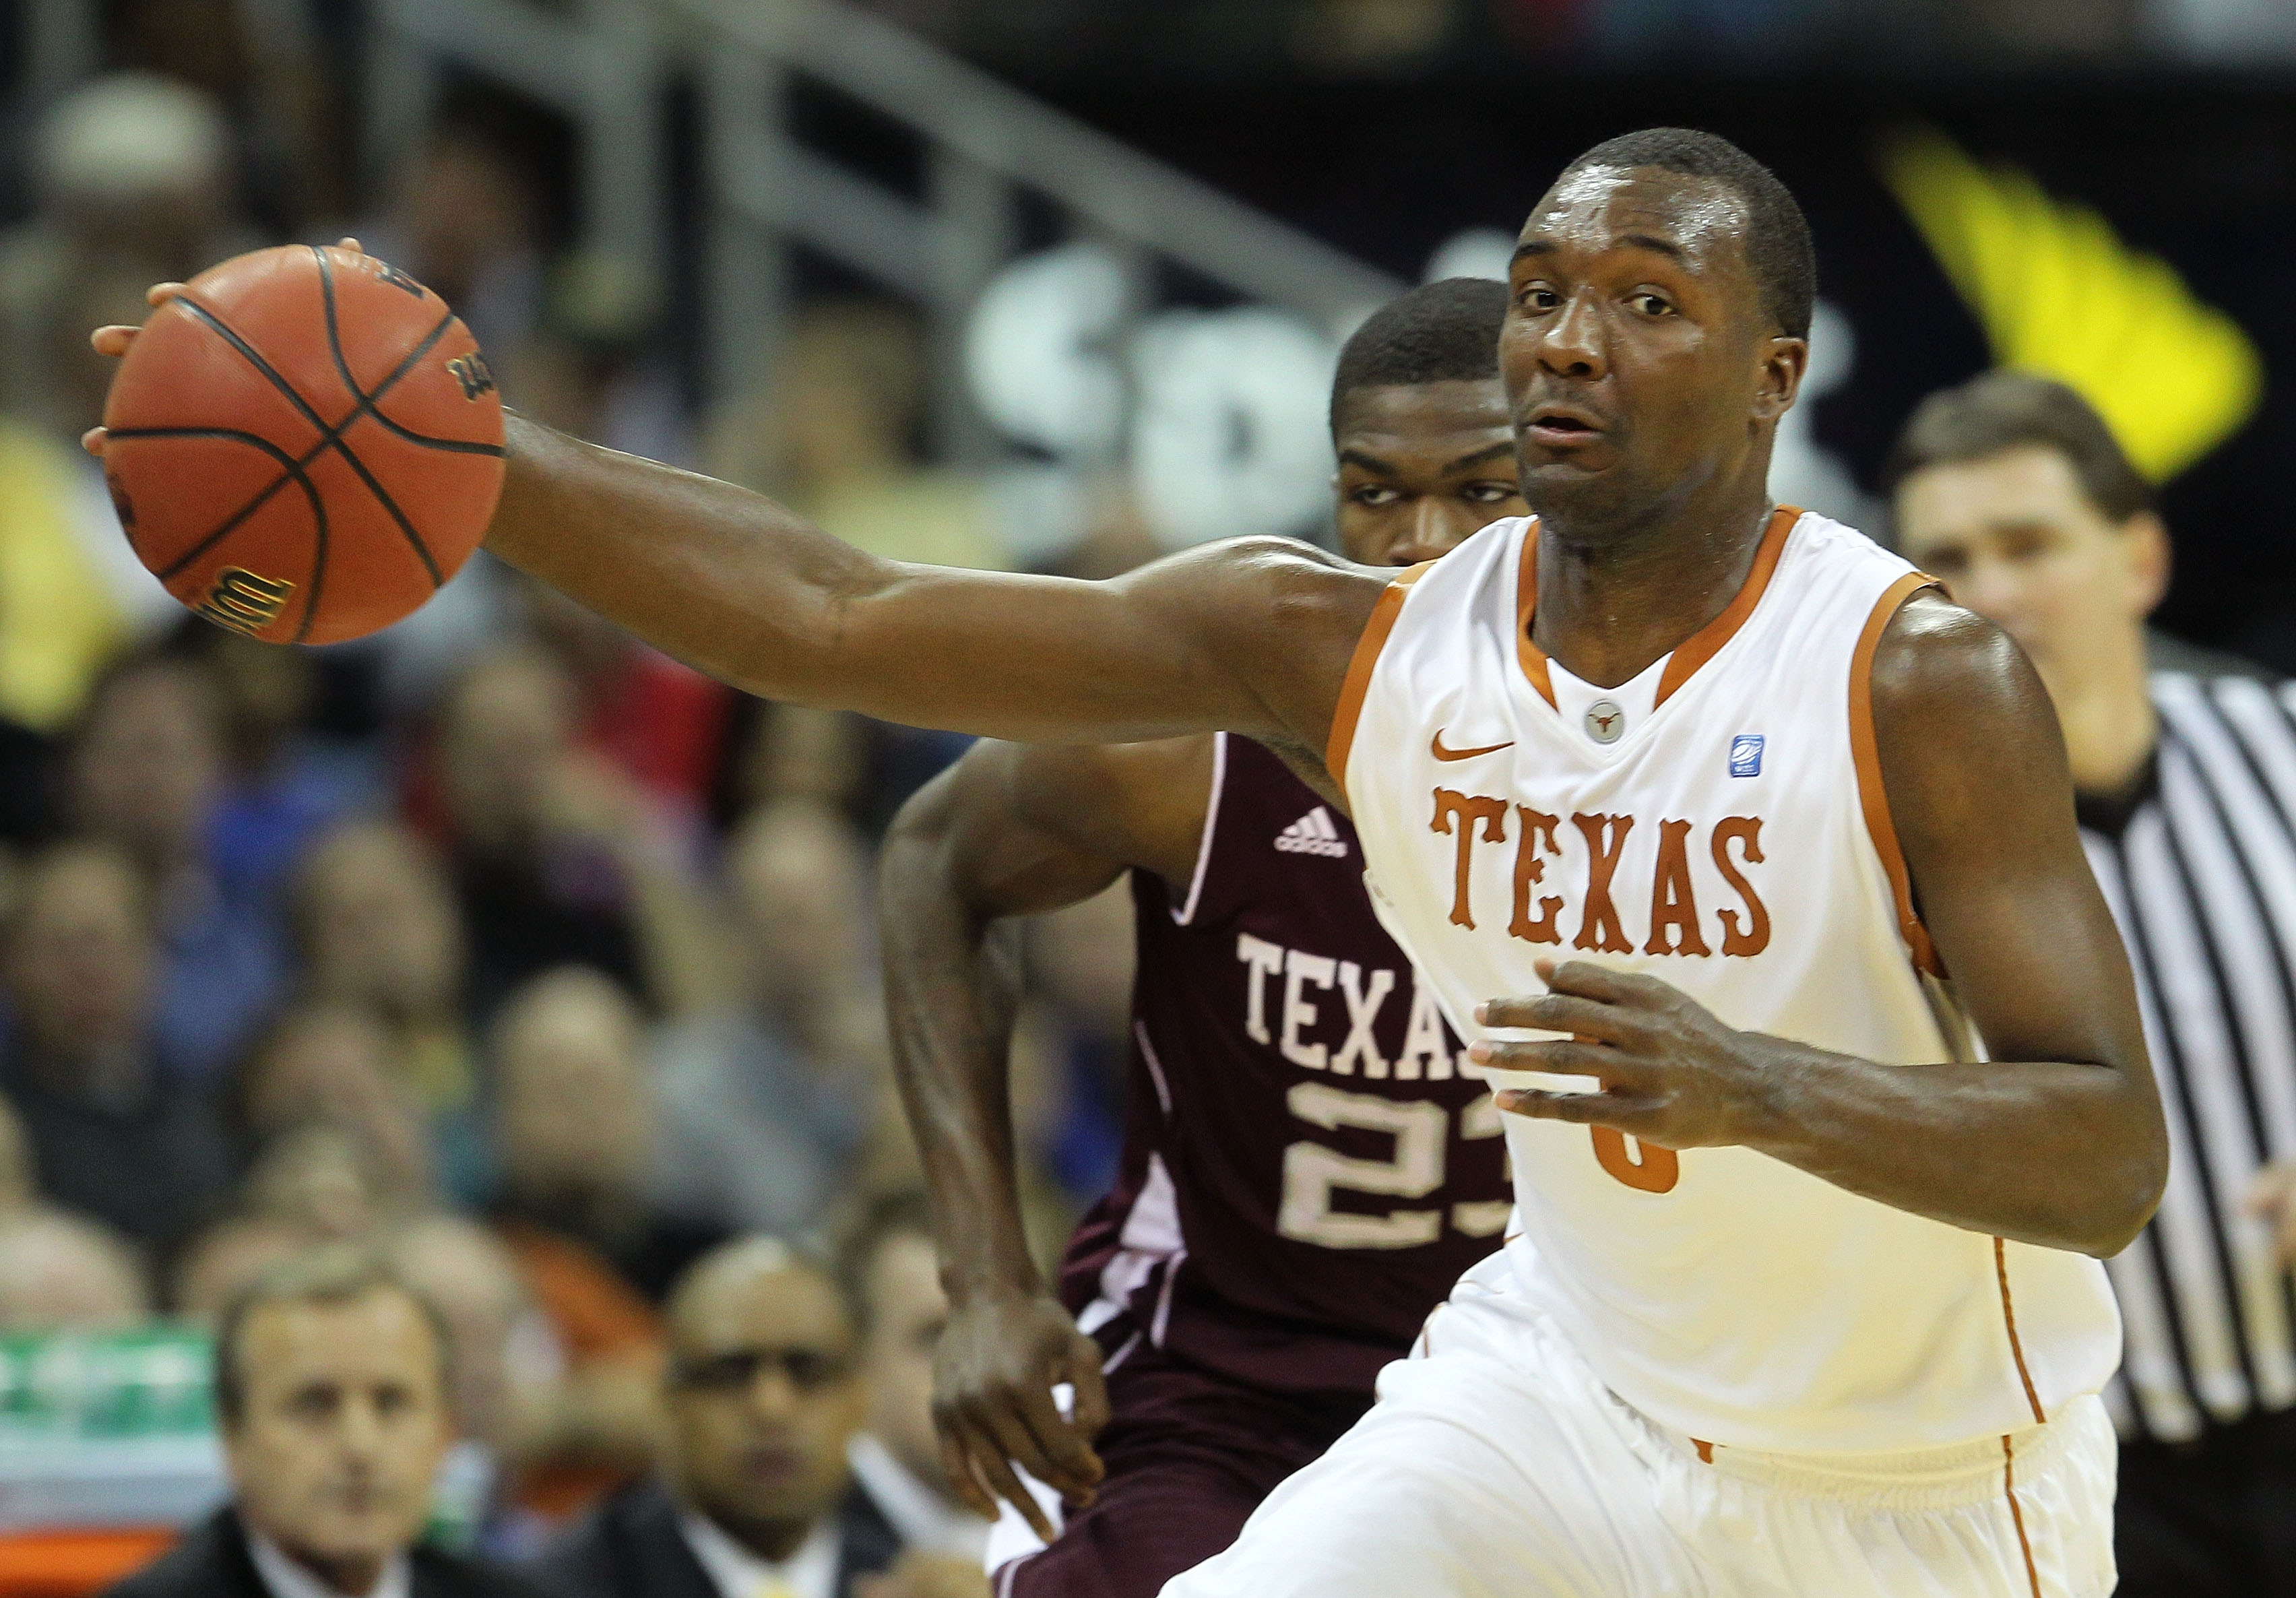 KANSAS CITY, MO - MARCH 11:  Jordan Hamilton #3 of the Texas Longhorns controls the ball during their semifinal game against the Texas A&M Aggies in the 2011 Phillips 66 Big 12 Men's Basketball Tournament at Sprint Center on March 11, 2011 in Kansas City,